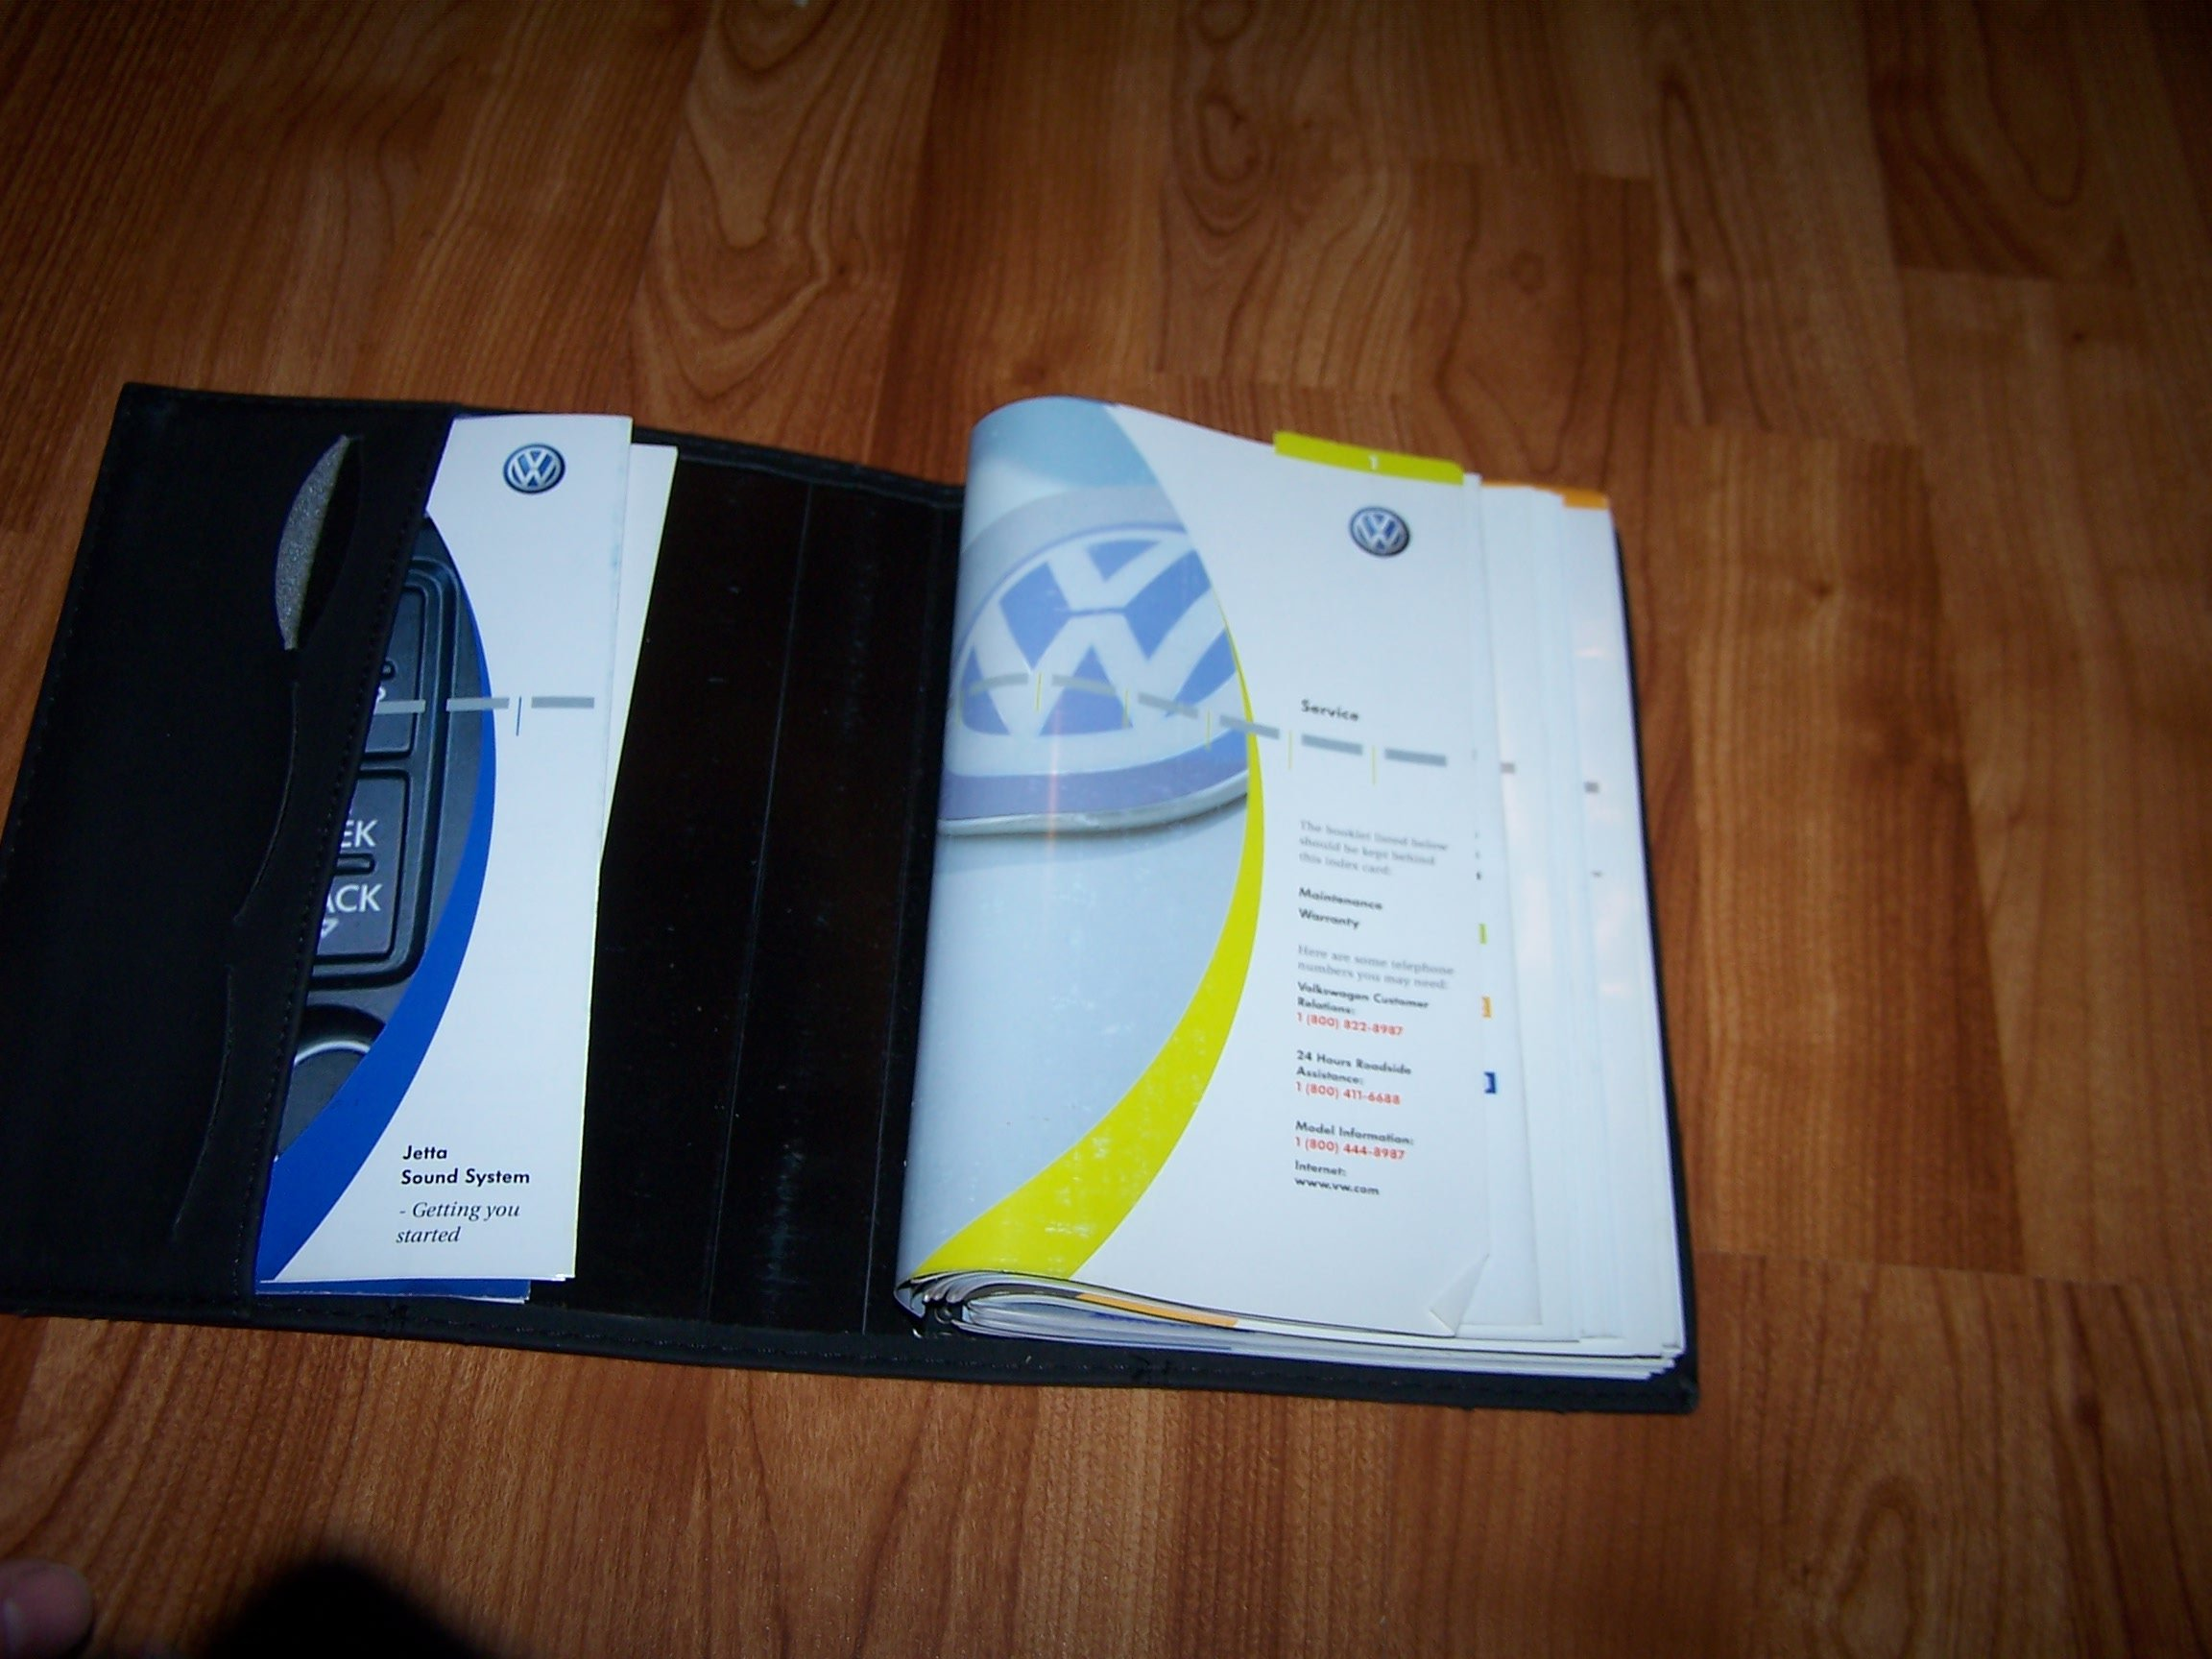 2005 volkswagen jetta owners manual | just give me the damn manual.